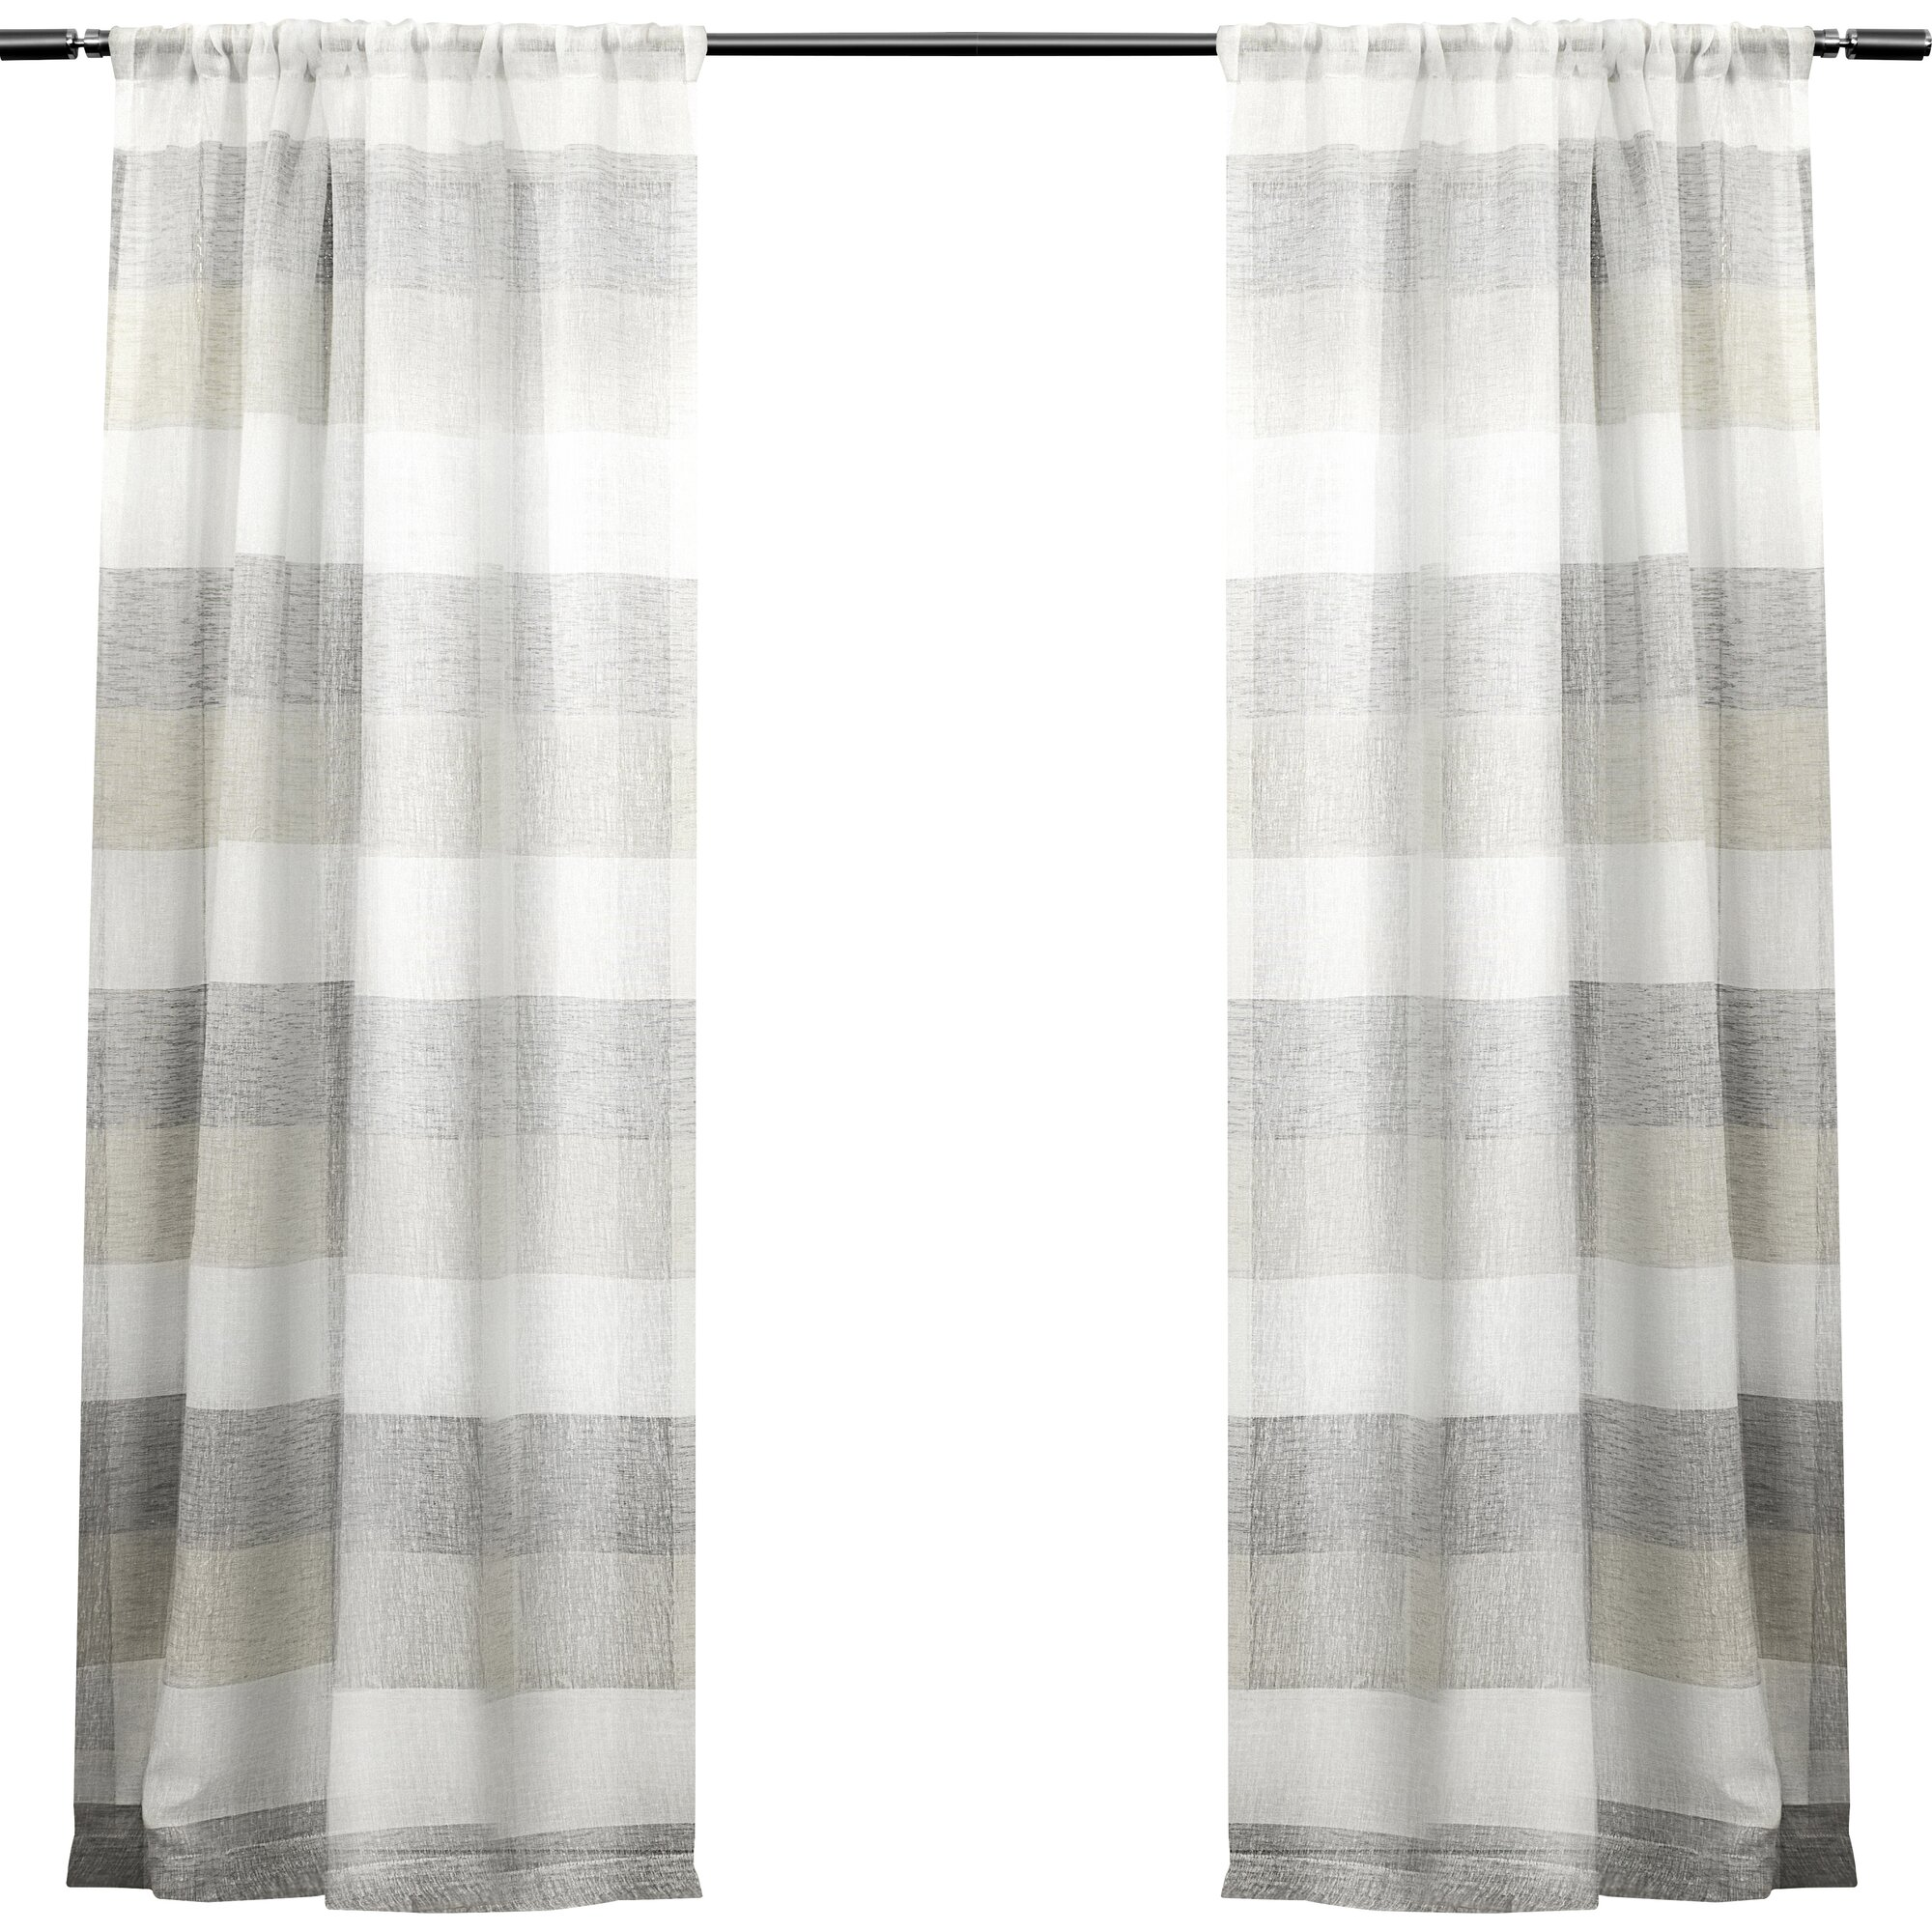 striped curtains home rod ribbon org nautica instacurtainss blackout thermal grosgrain design pocket avarii panels best curtain us ideas